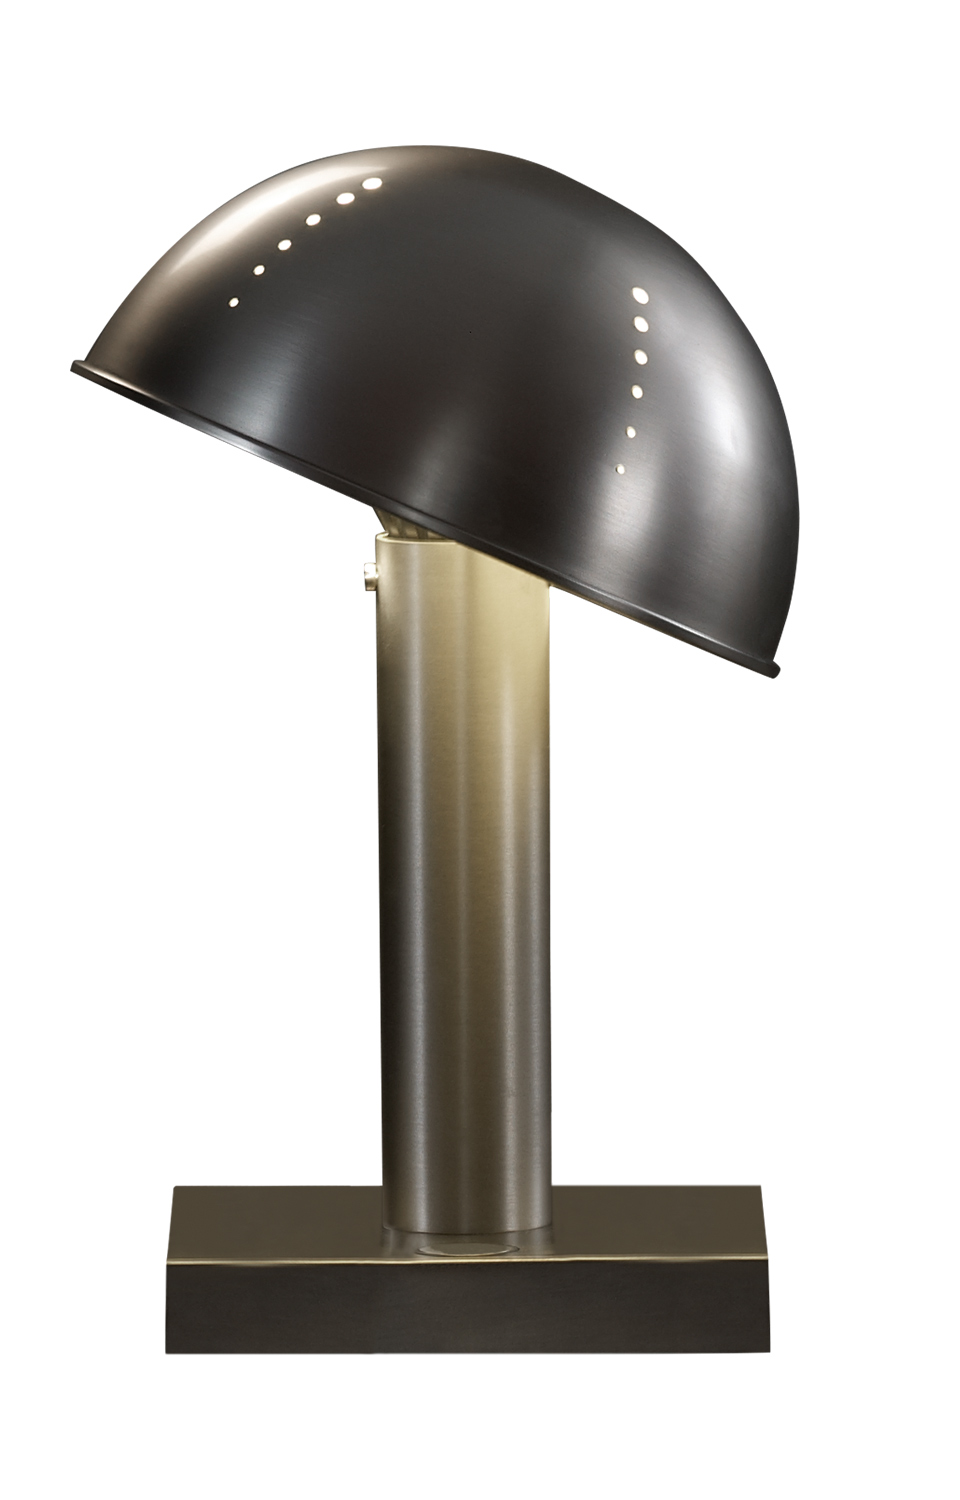 Luciola is a table LED lamp available in bronze, chrome or nickel, from Promemoria's catalogue | Promemoria